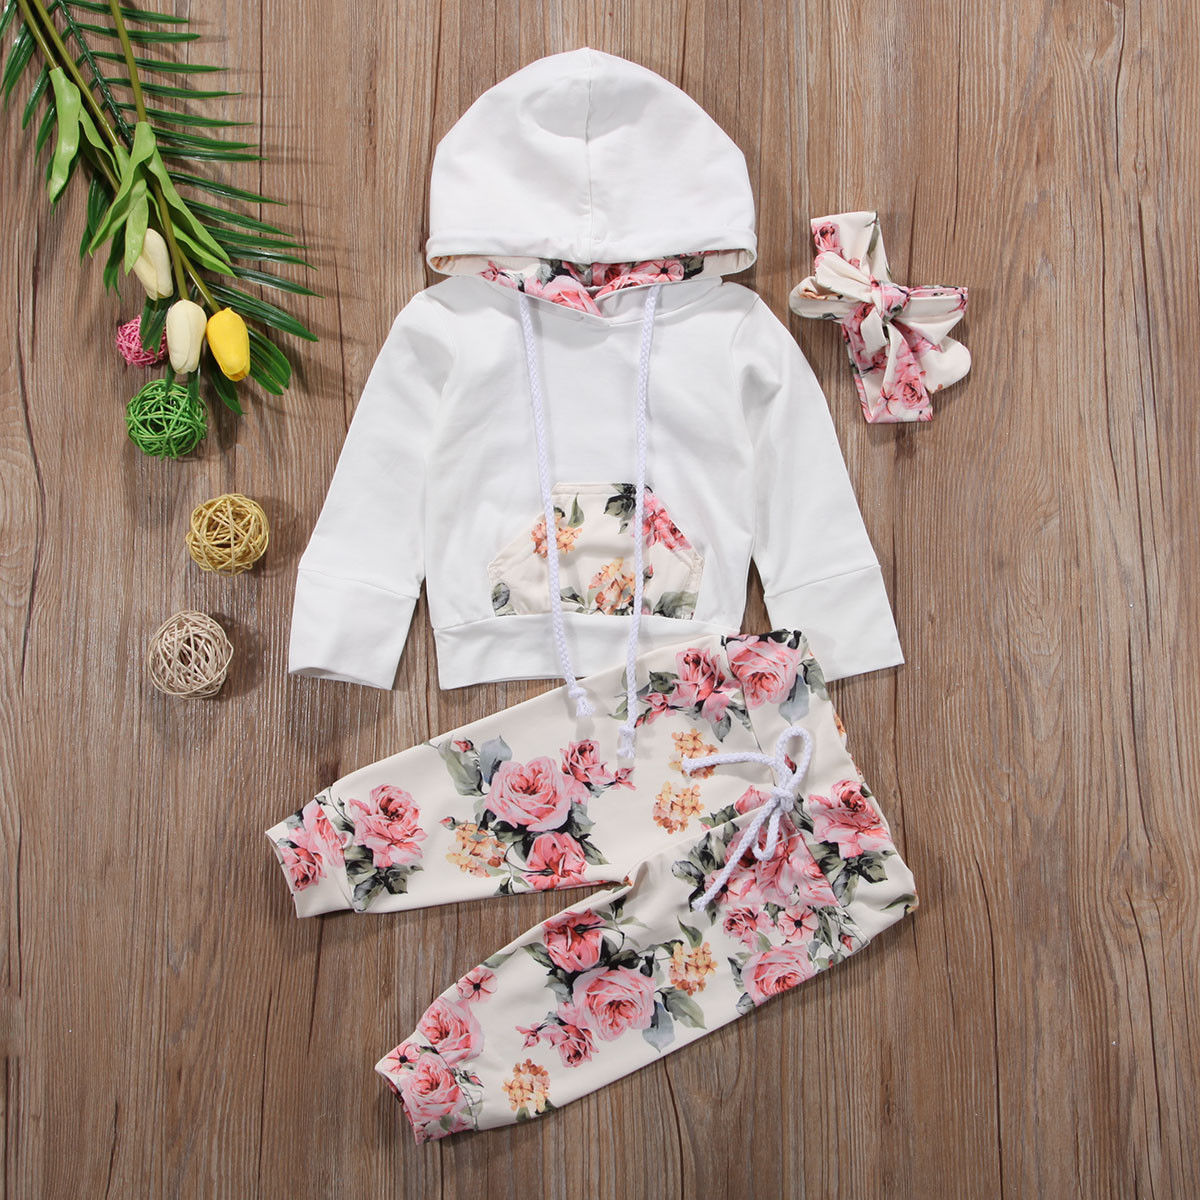 Pudcoco Baby Girl Suits Newborn Toddler Baby Girls Hooded Tops Shirt+Long Pants Outfits Set Tracksuit